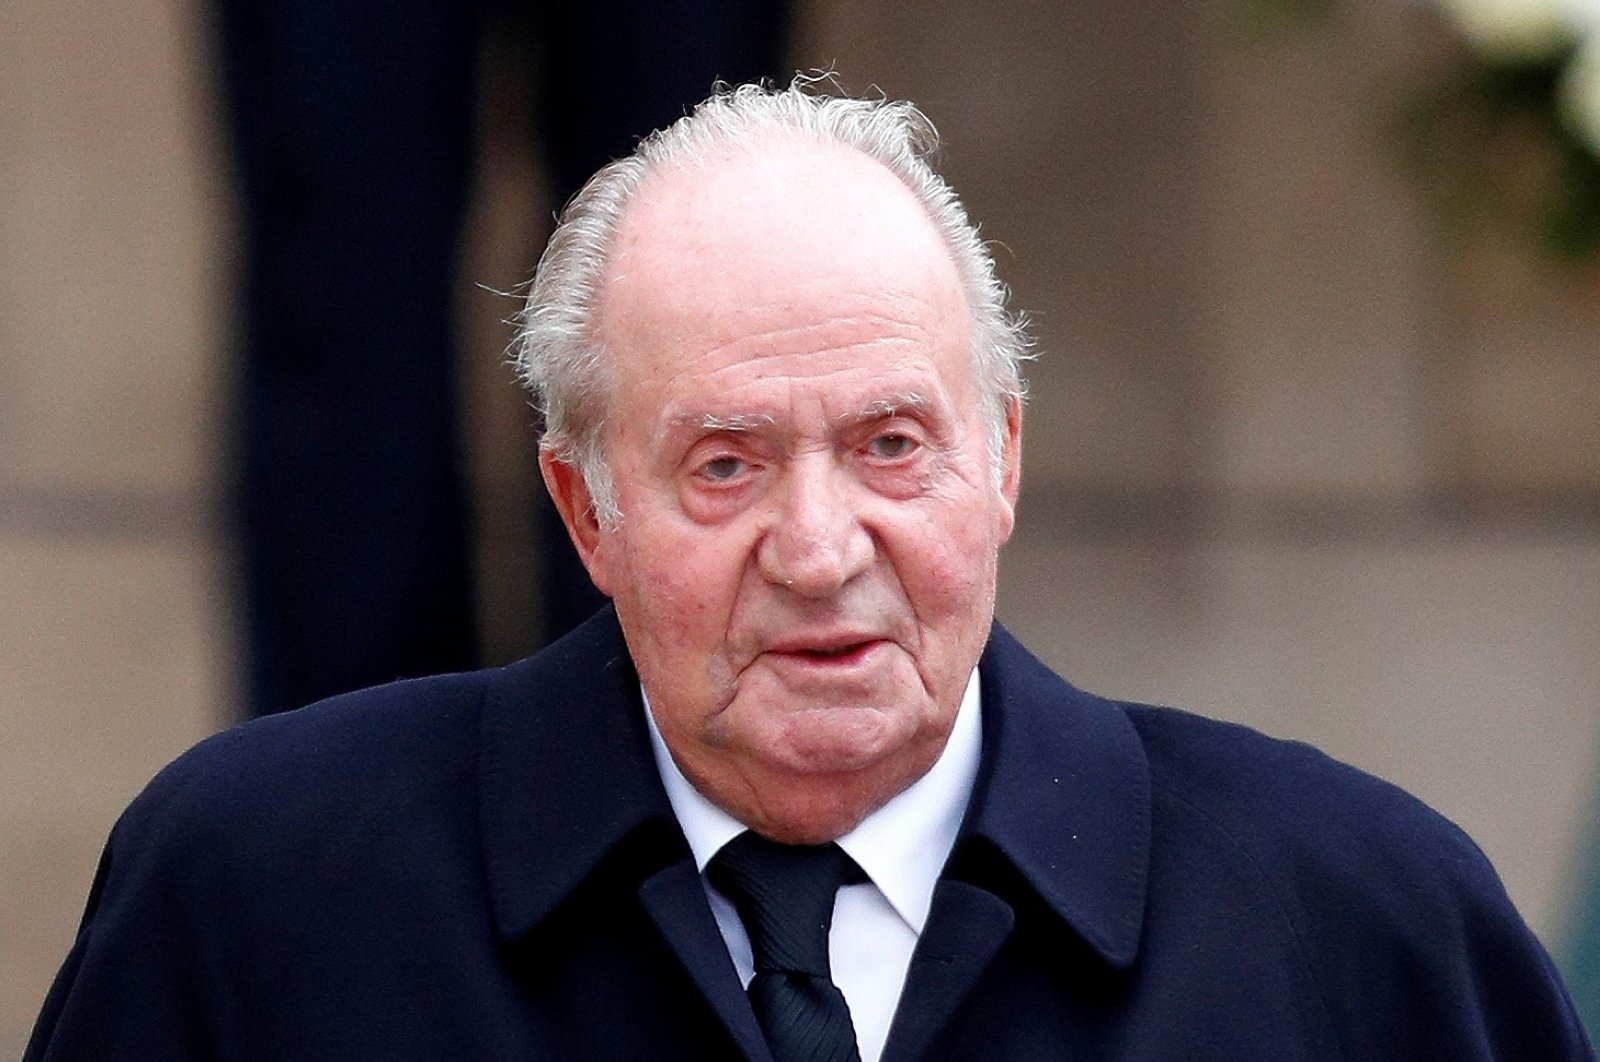 Spain's former king, Juan Carlos, leaves after attending the funeral ceremony of Luxembourg's Grand Duke Jean at the Notre-Dame Cathedral in Luxembourg, May 4, 2019. (Reuters Photo)